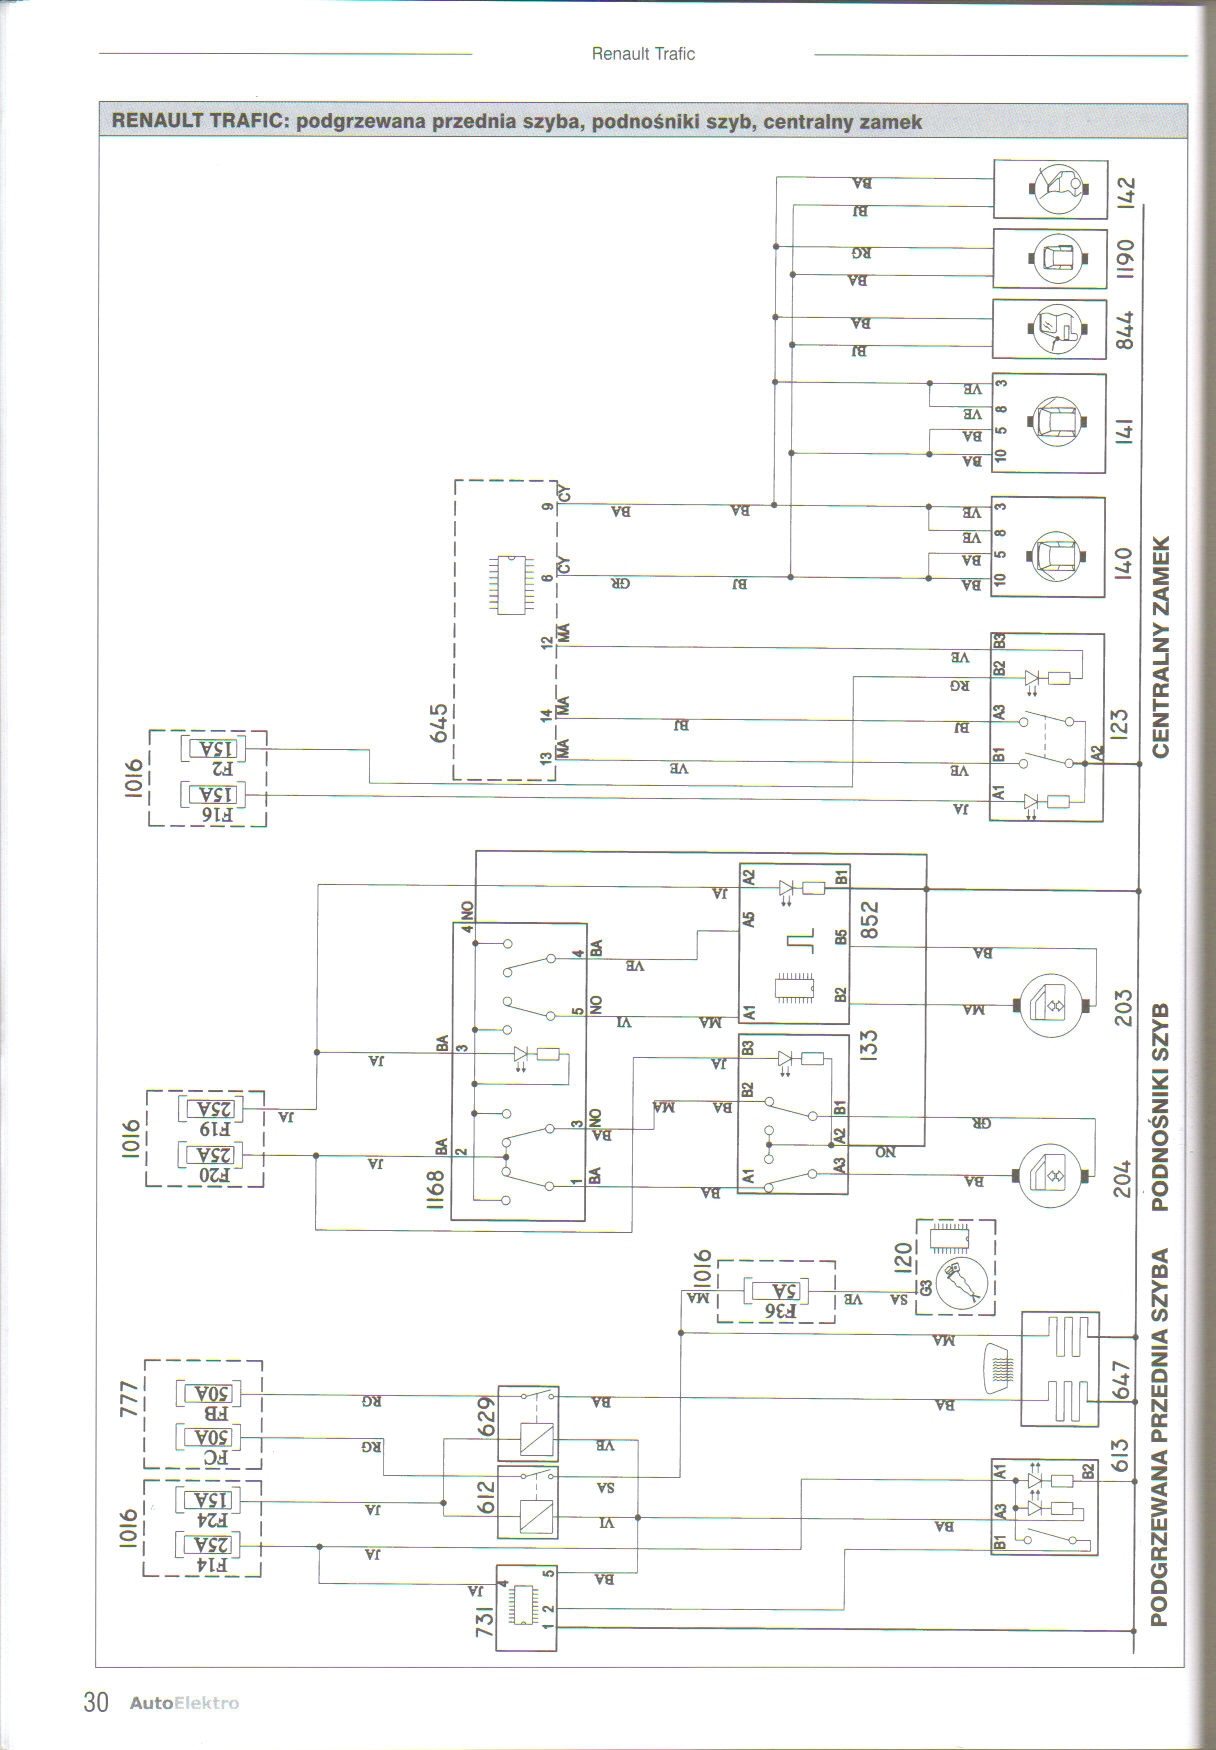 renault trafic abs wiring diagram computers and communication, Wiring diagram